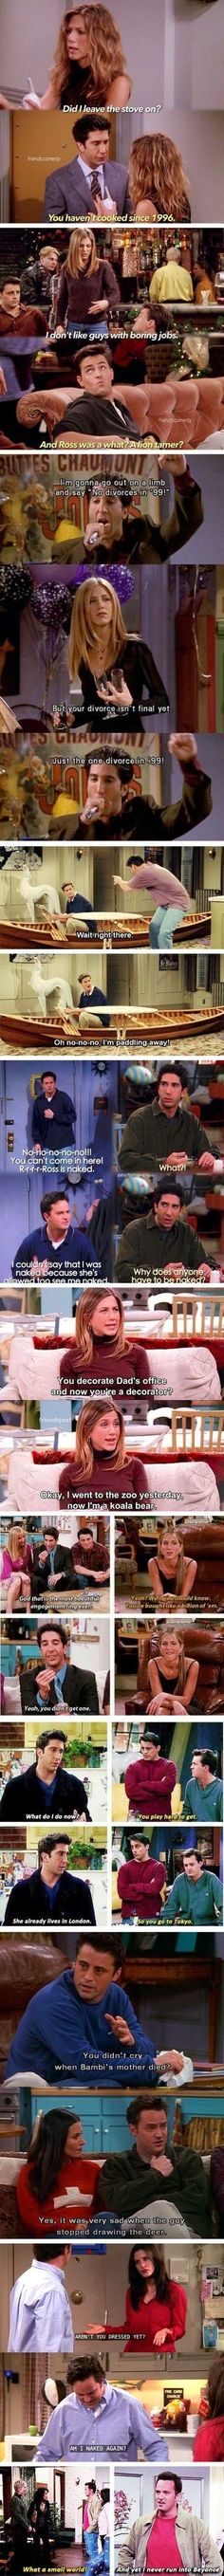 Friends. BEST. SHOW. EVER